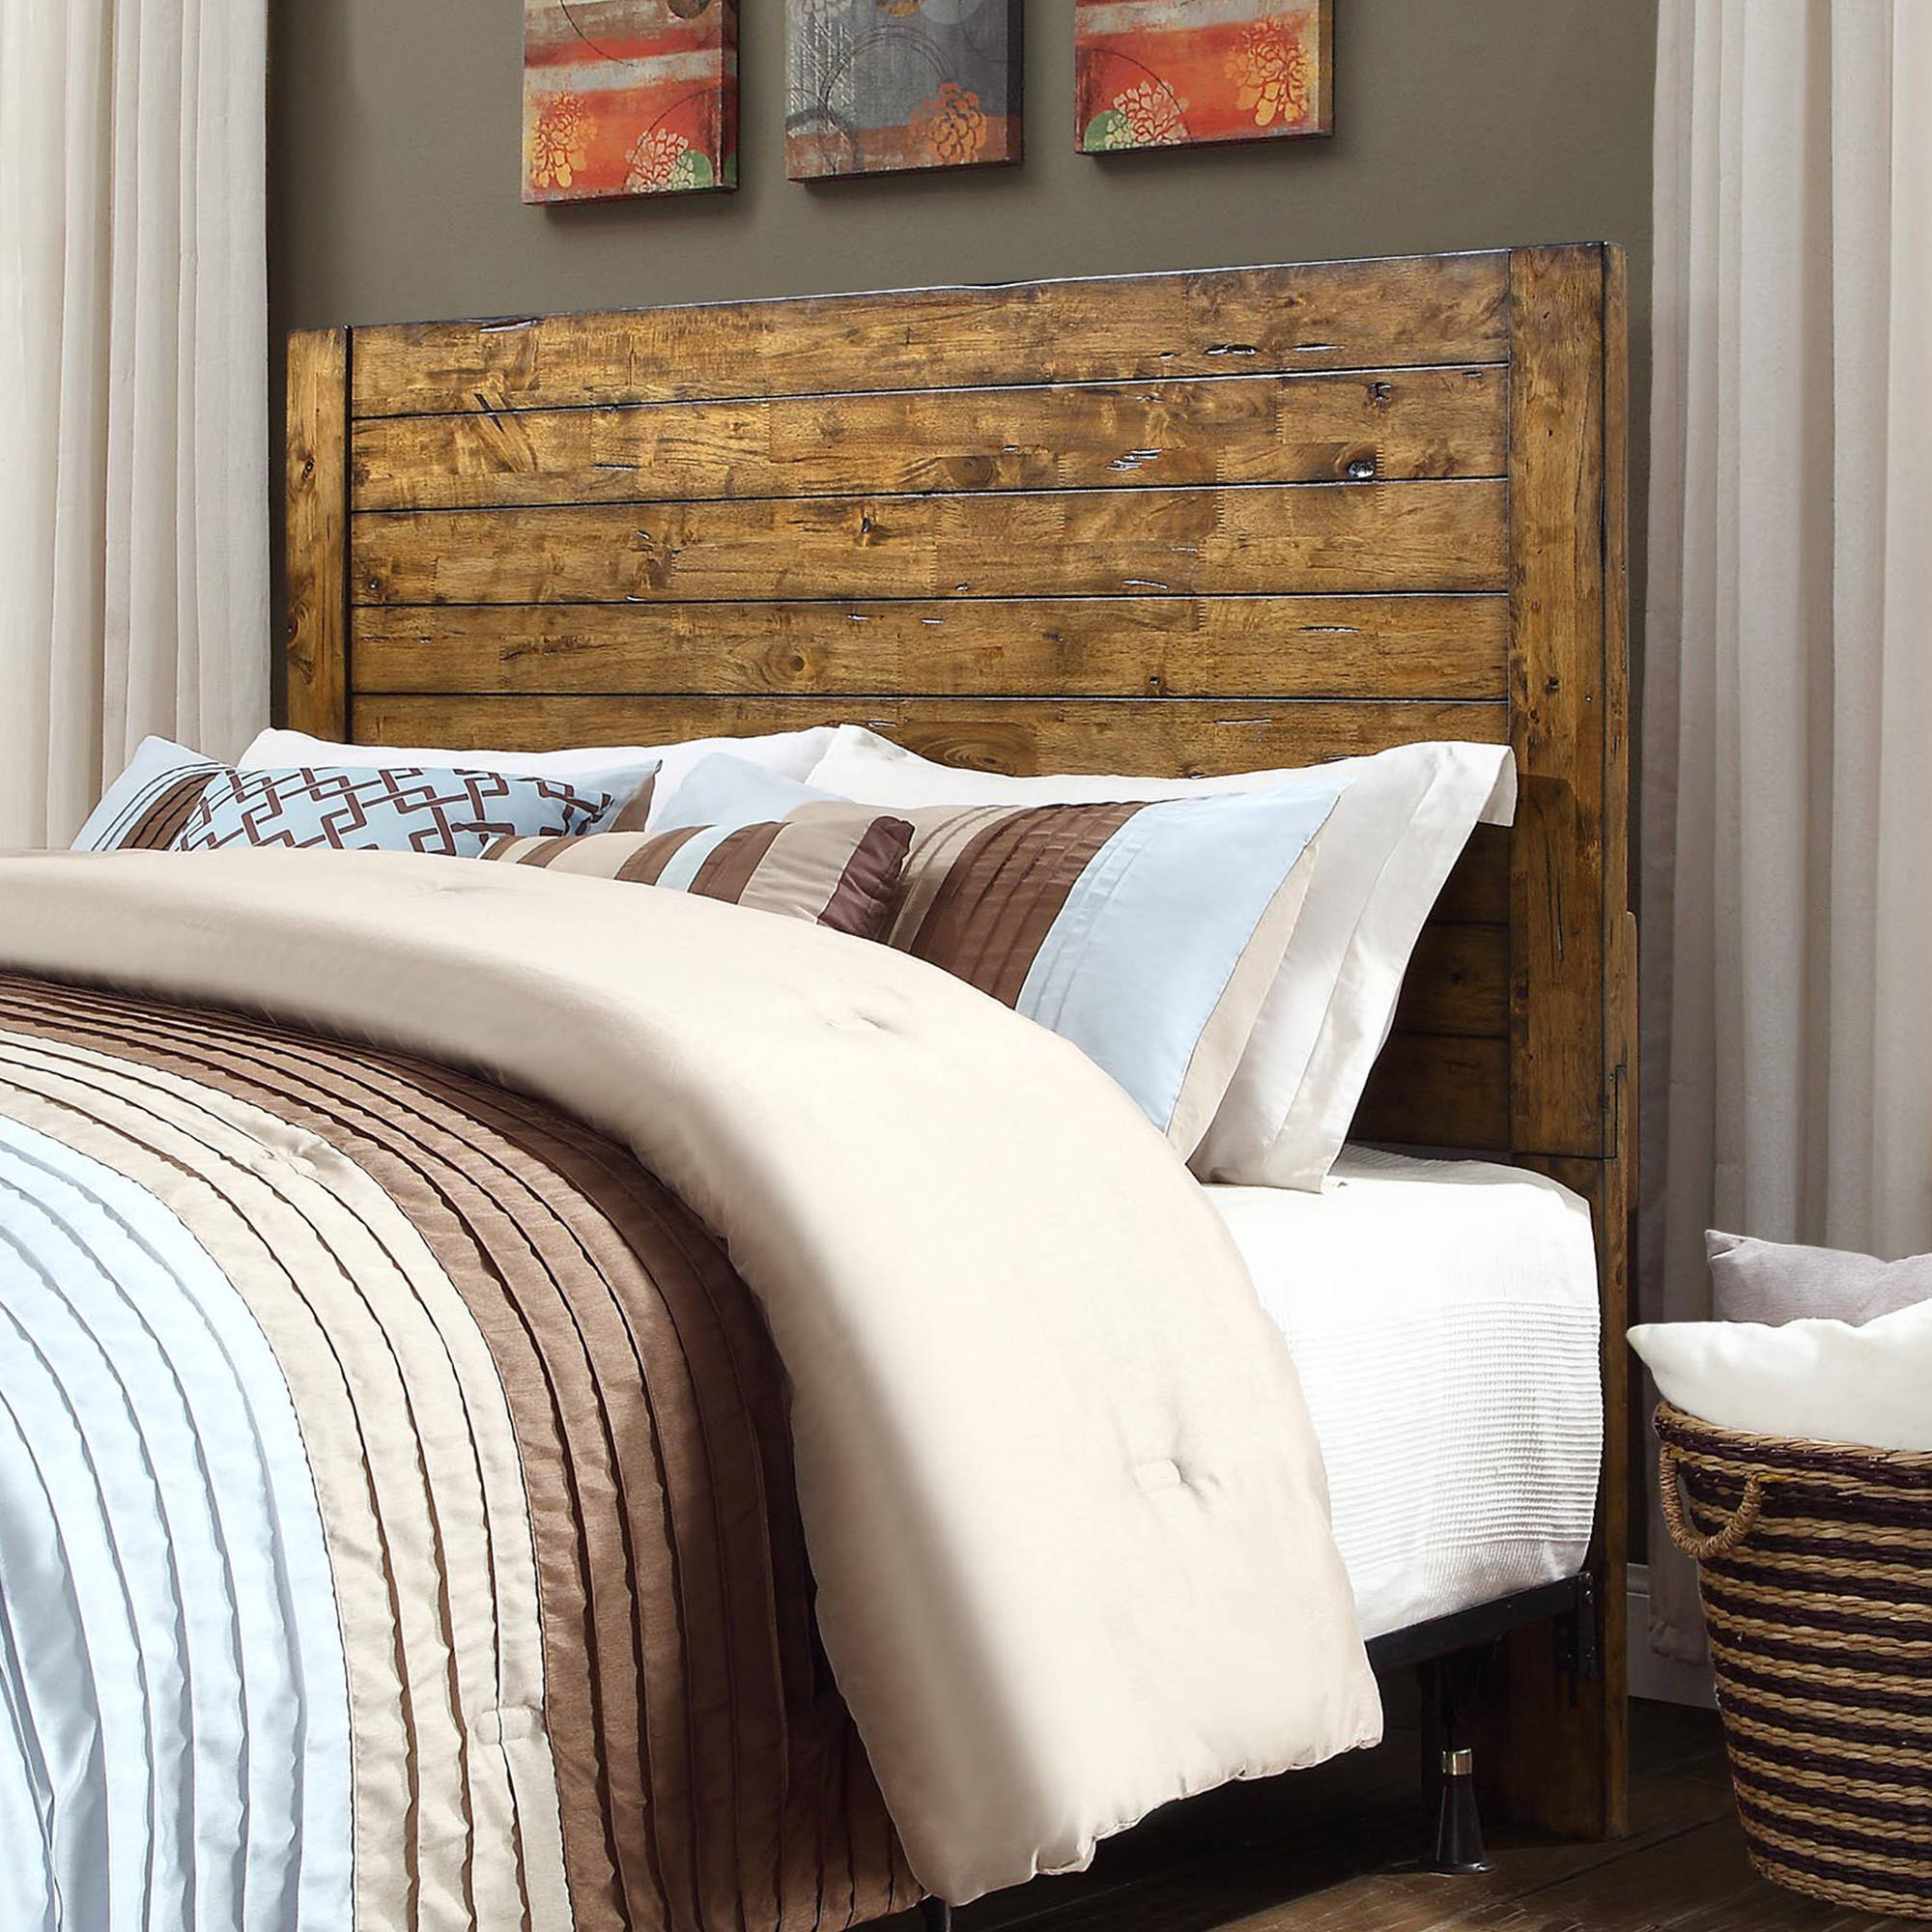 Better Homes and Gardens Bryant Full Queen Solid Wood Headboard     Better Homes and Gardens Bryant Full Queen Solid Wood Headboard  Rustic  Brown Finish